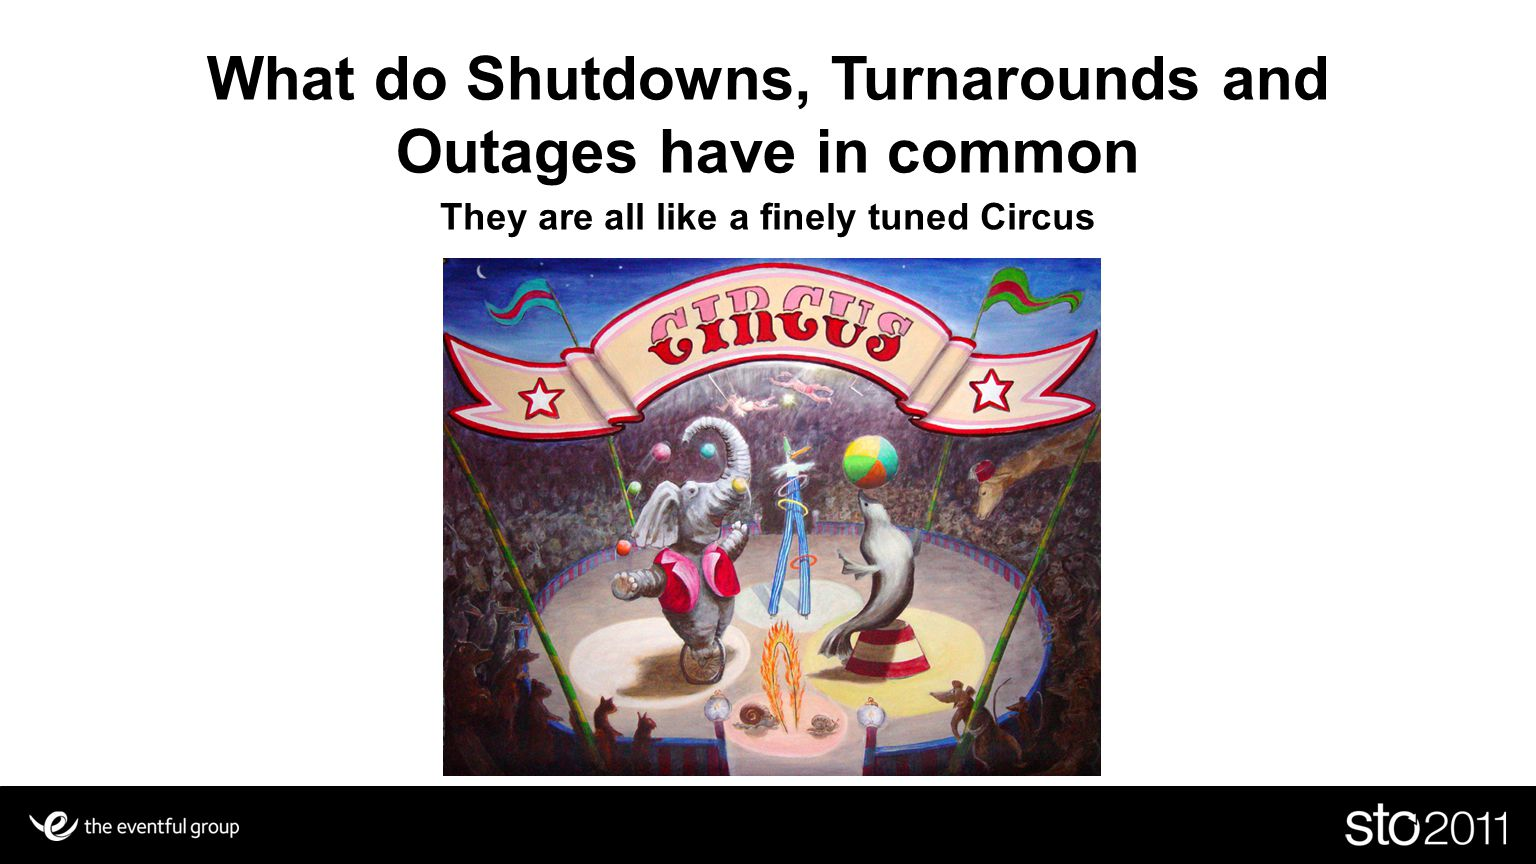 What do Shutdowns, Turnarounds and Outages have in common